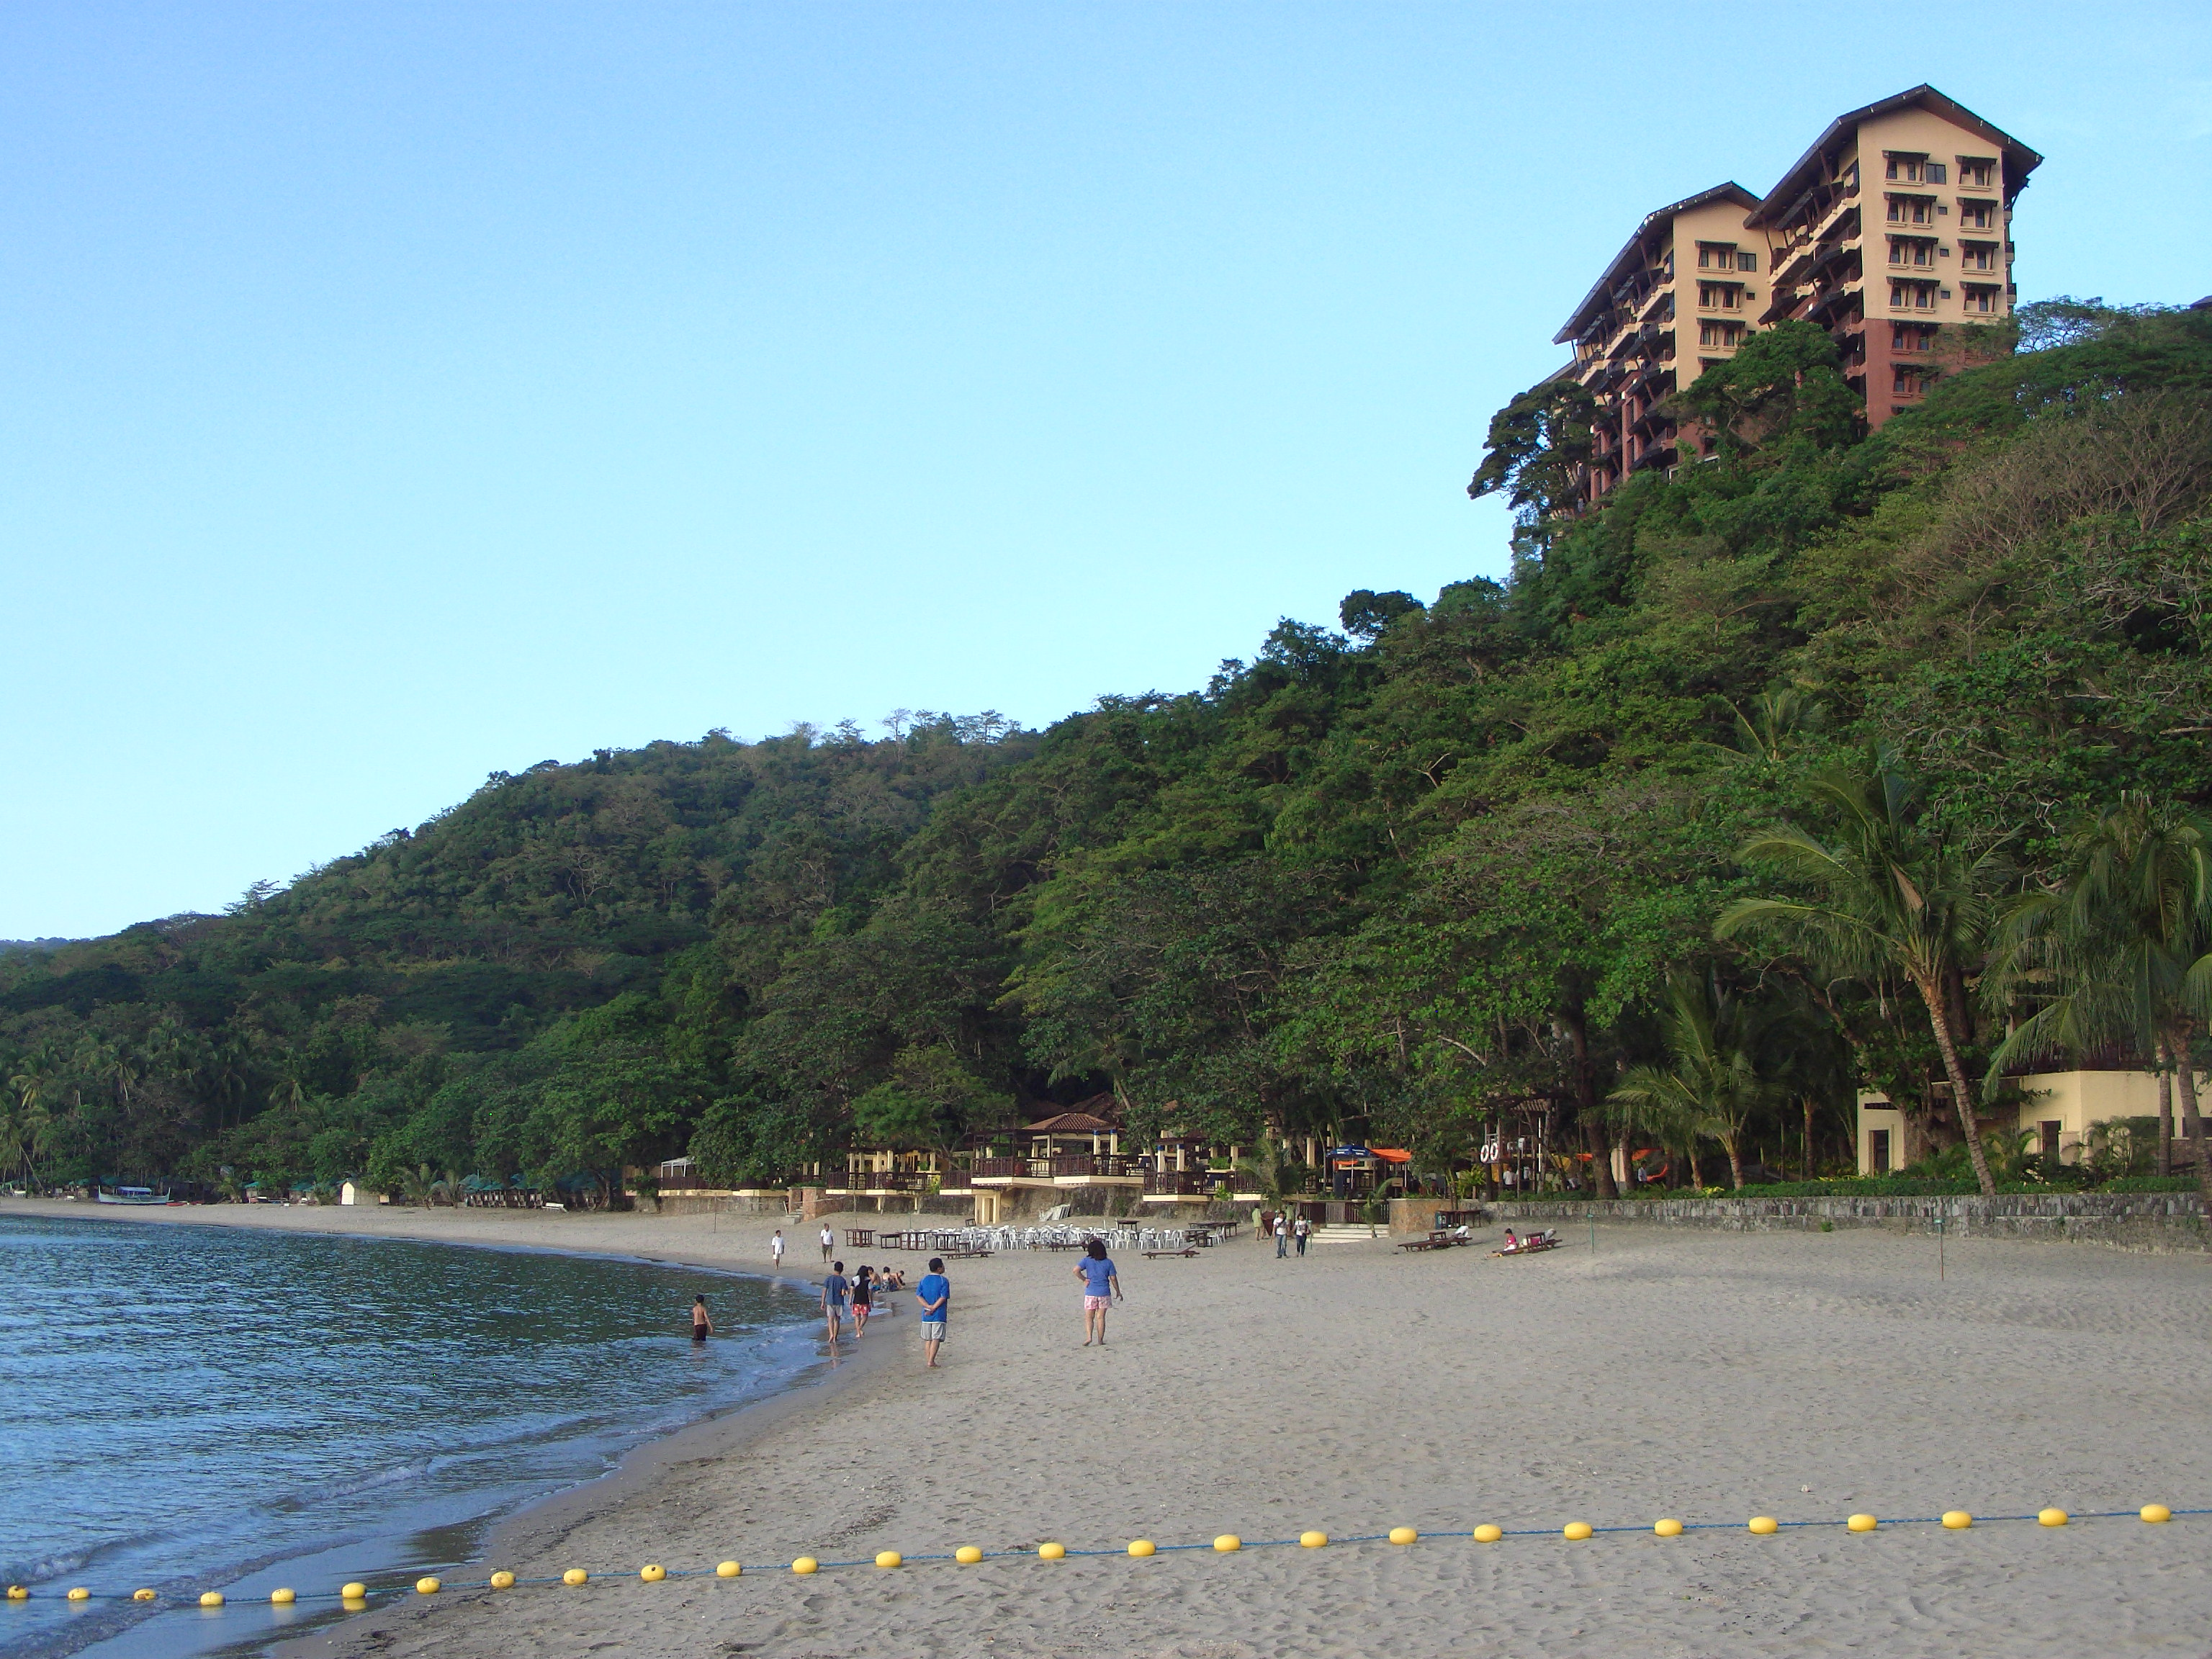 The beachfront at Terrazas De Punta Fuego